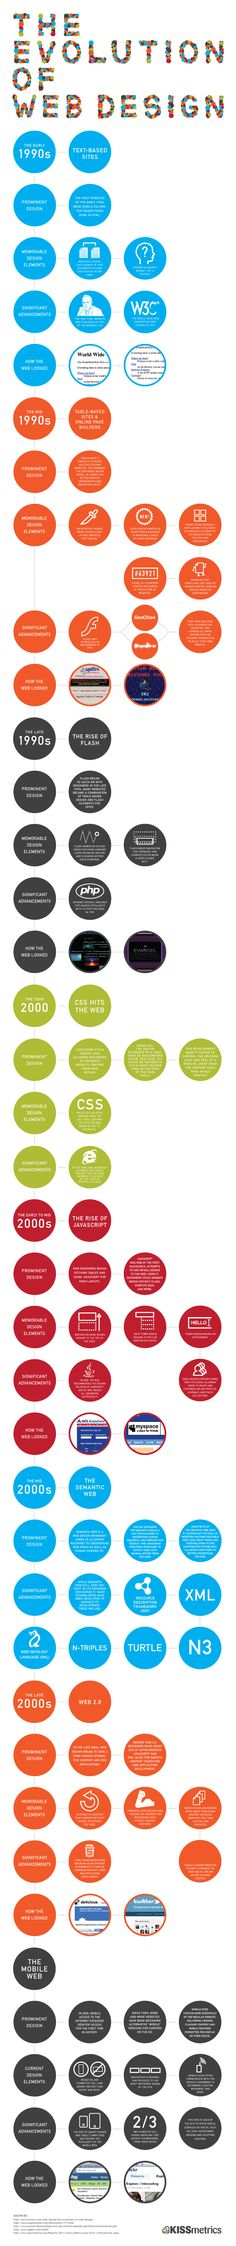 The Evolution of Web Design #infographic #kissmetrics